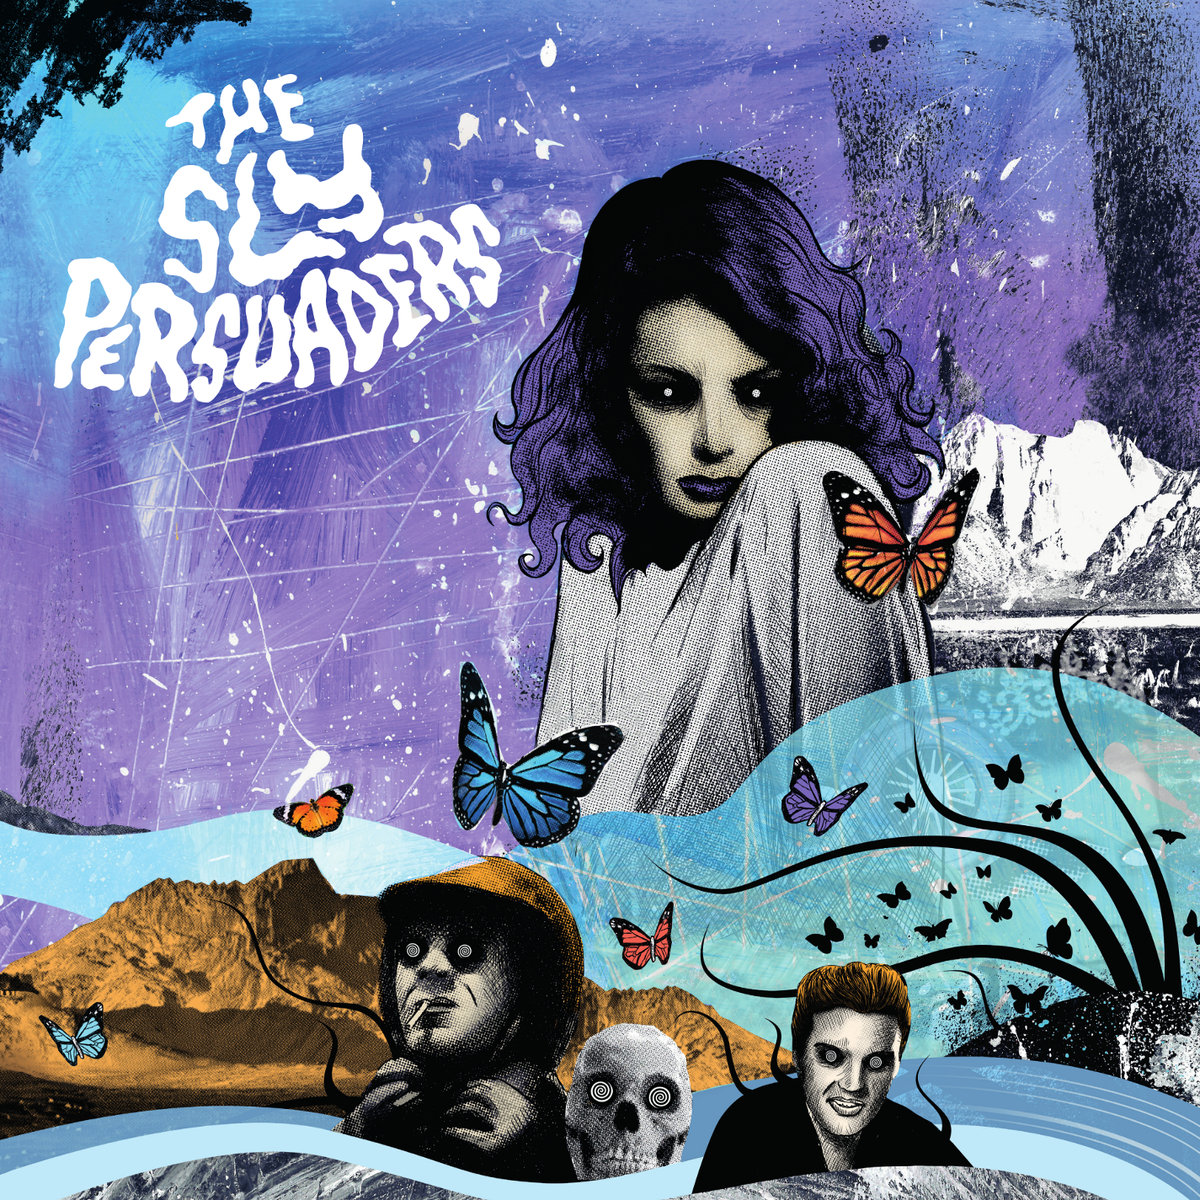 Sly Persuaders cover